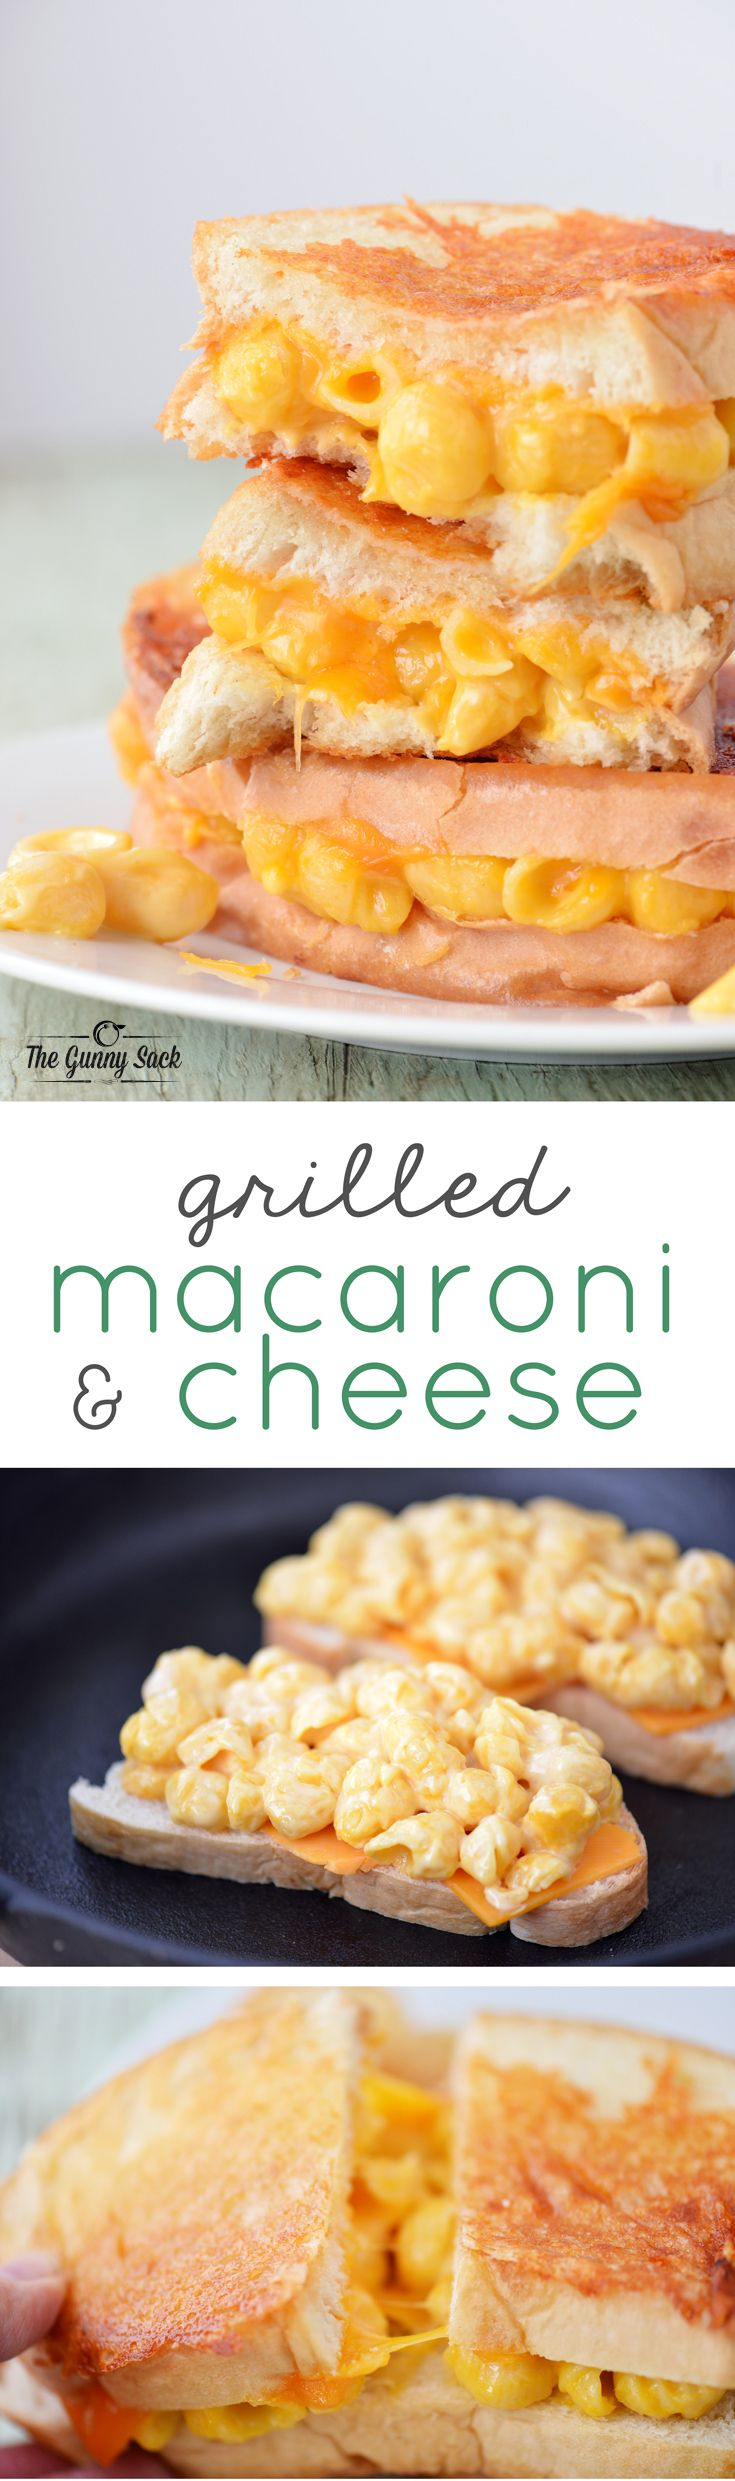 A Grilled Macaroni and Cheese Sandwich is the ultimate comfort food with triple the cheese! Try this recipe for dinner served with tomato soup.